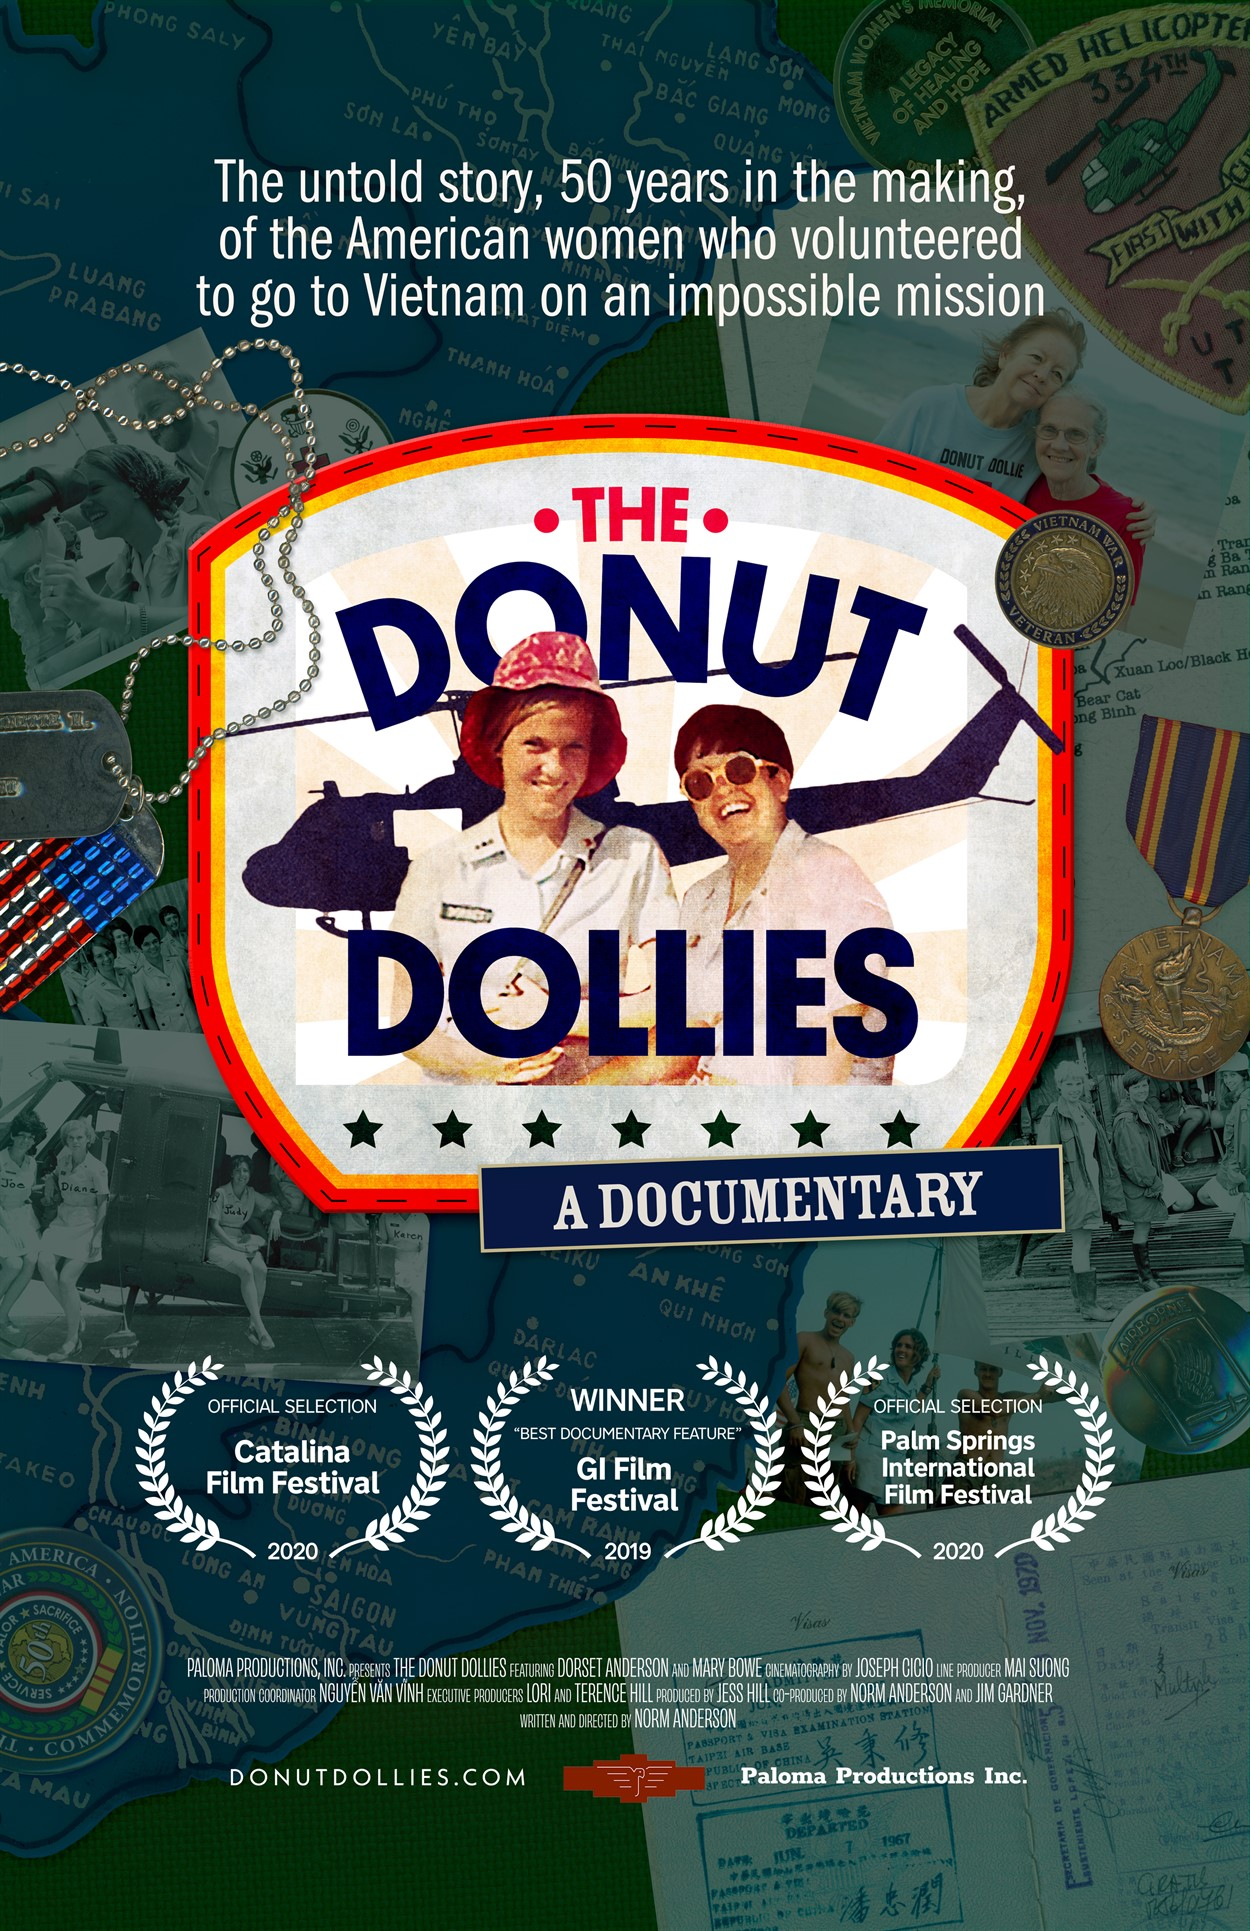 DRIVE IN\The-Donut-Dollies_Movie-Poster_Portrait-Layout.jpg